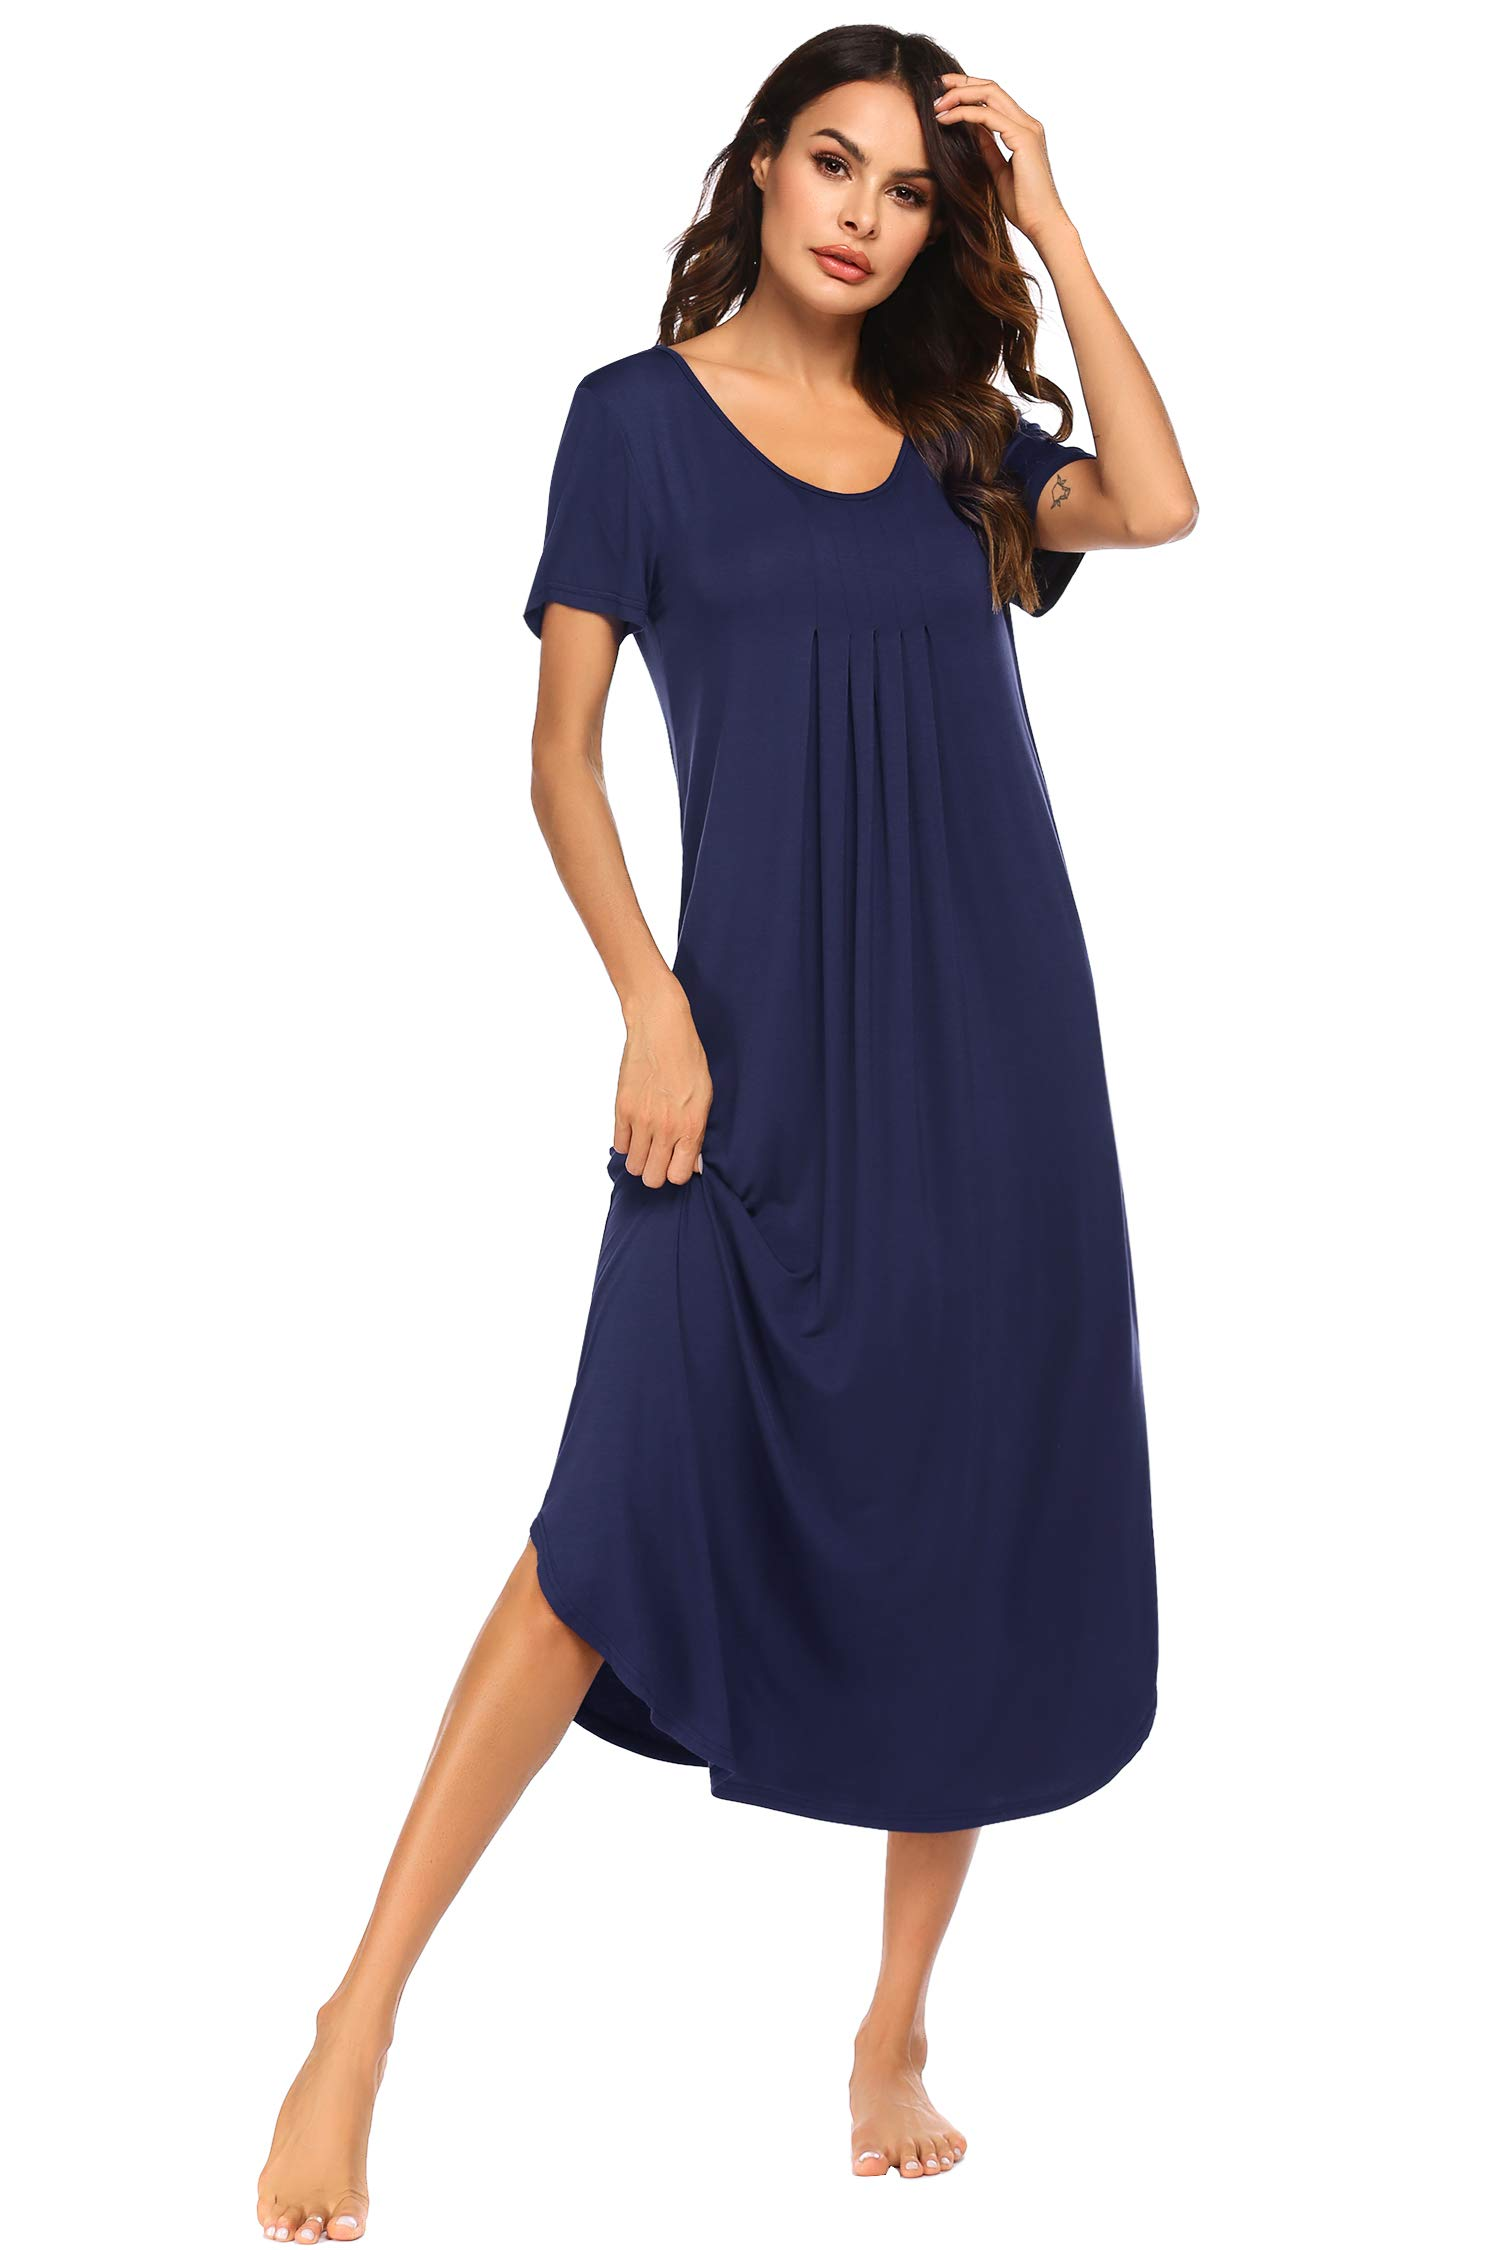 Ekouaer Womens Short Sleeve Long Nightgown Pleated Sleep Dress Soft Nightshirt Sleepwear Lounge Dresses